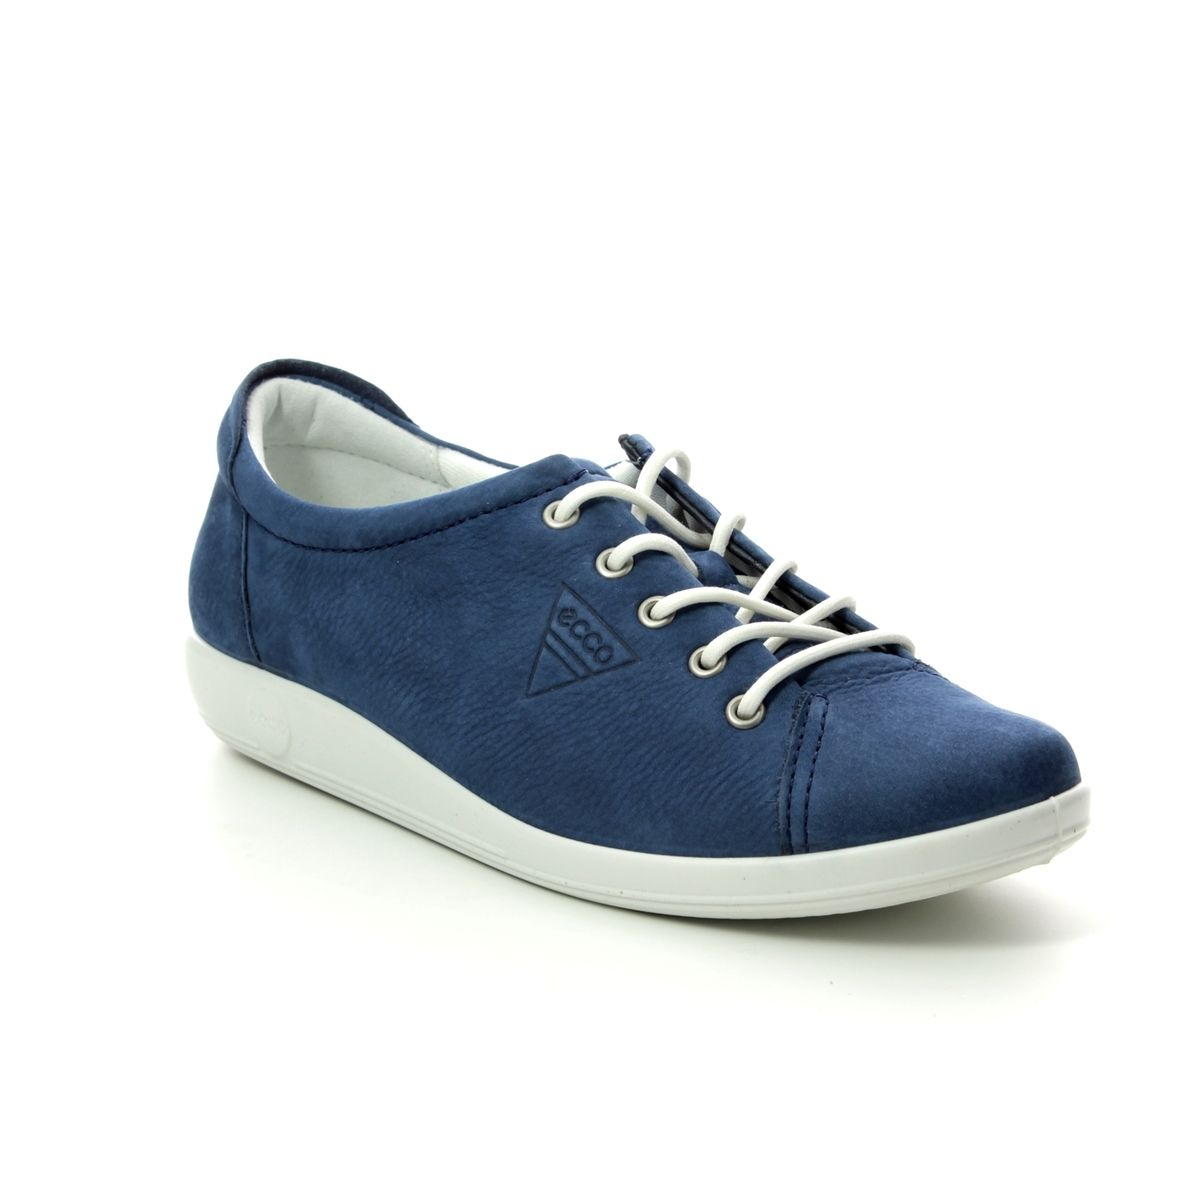 5bcab2f0ee 206503/02048 Soft 2.0 at Begg Shoes & Bags